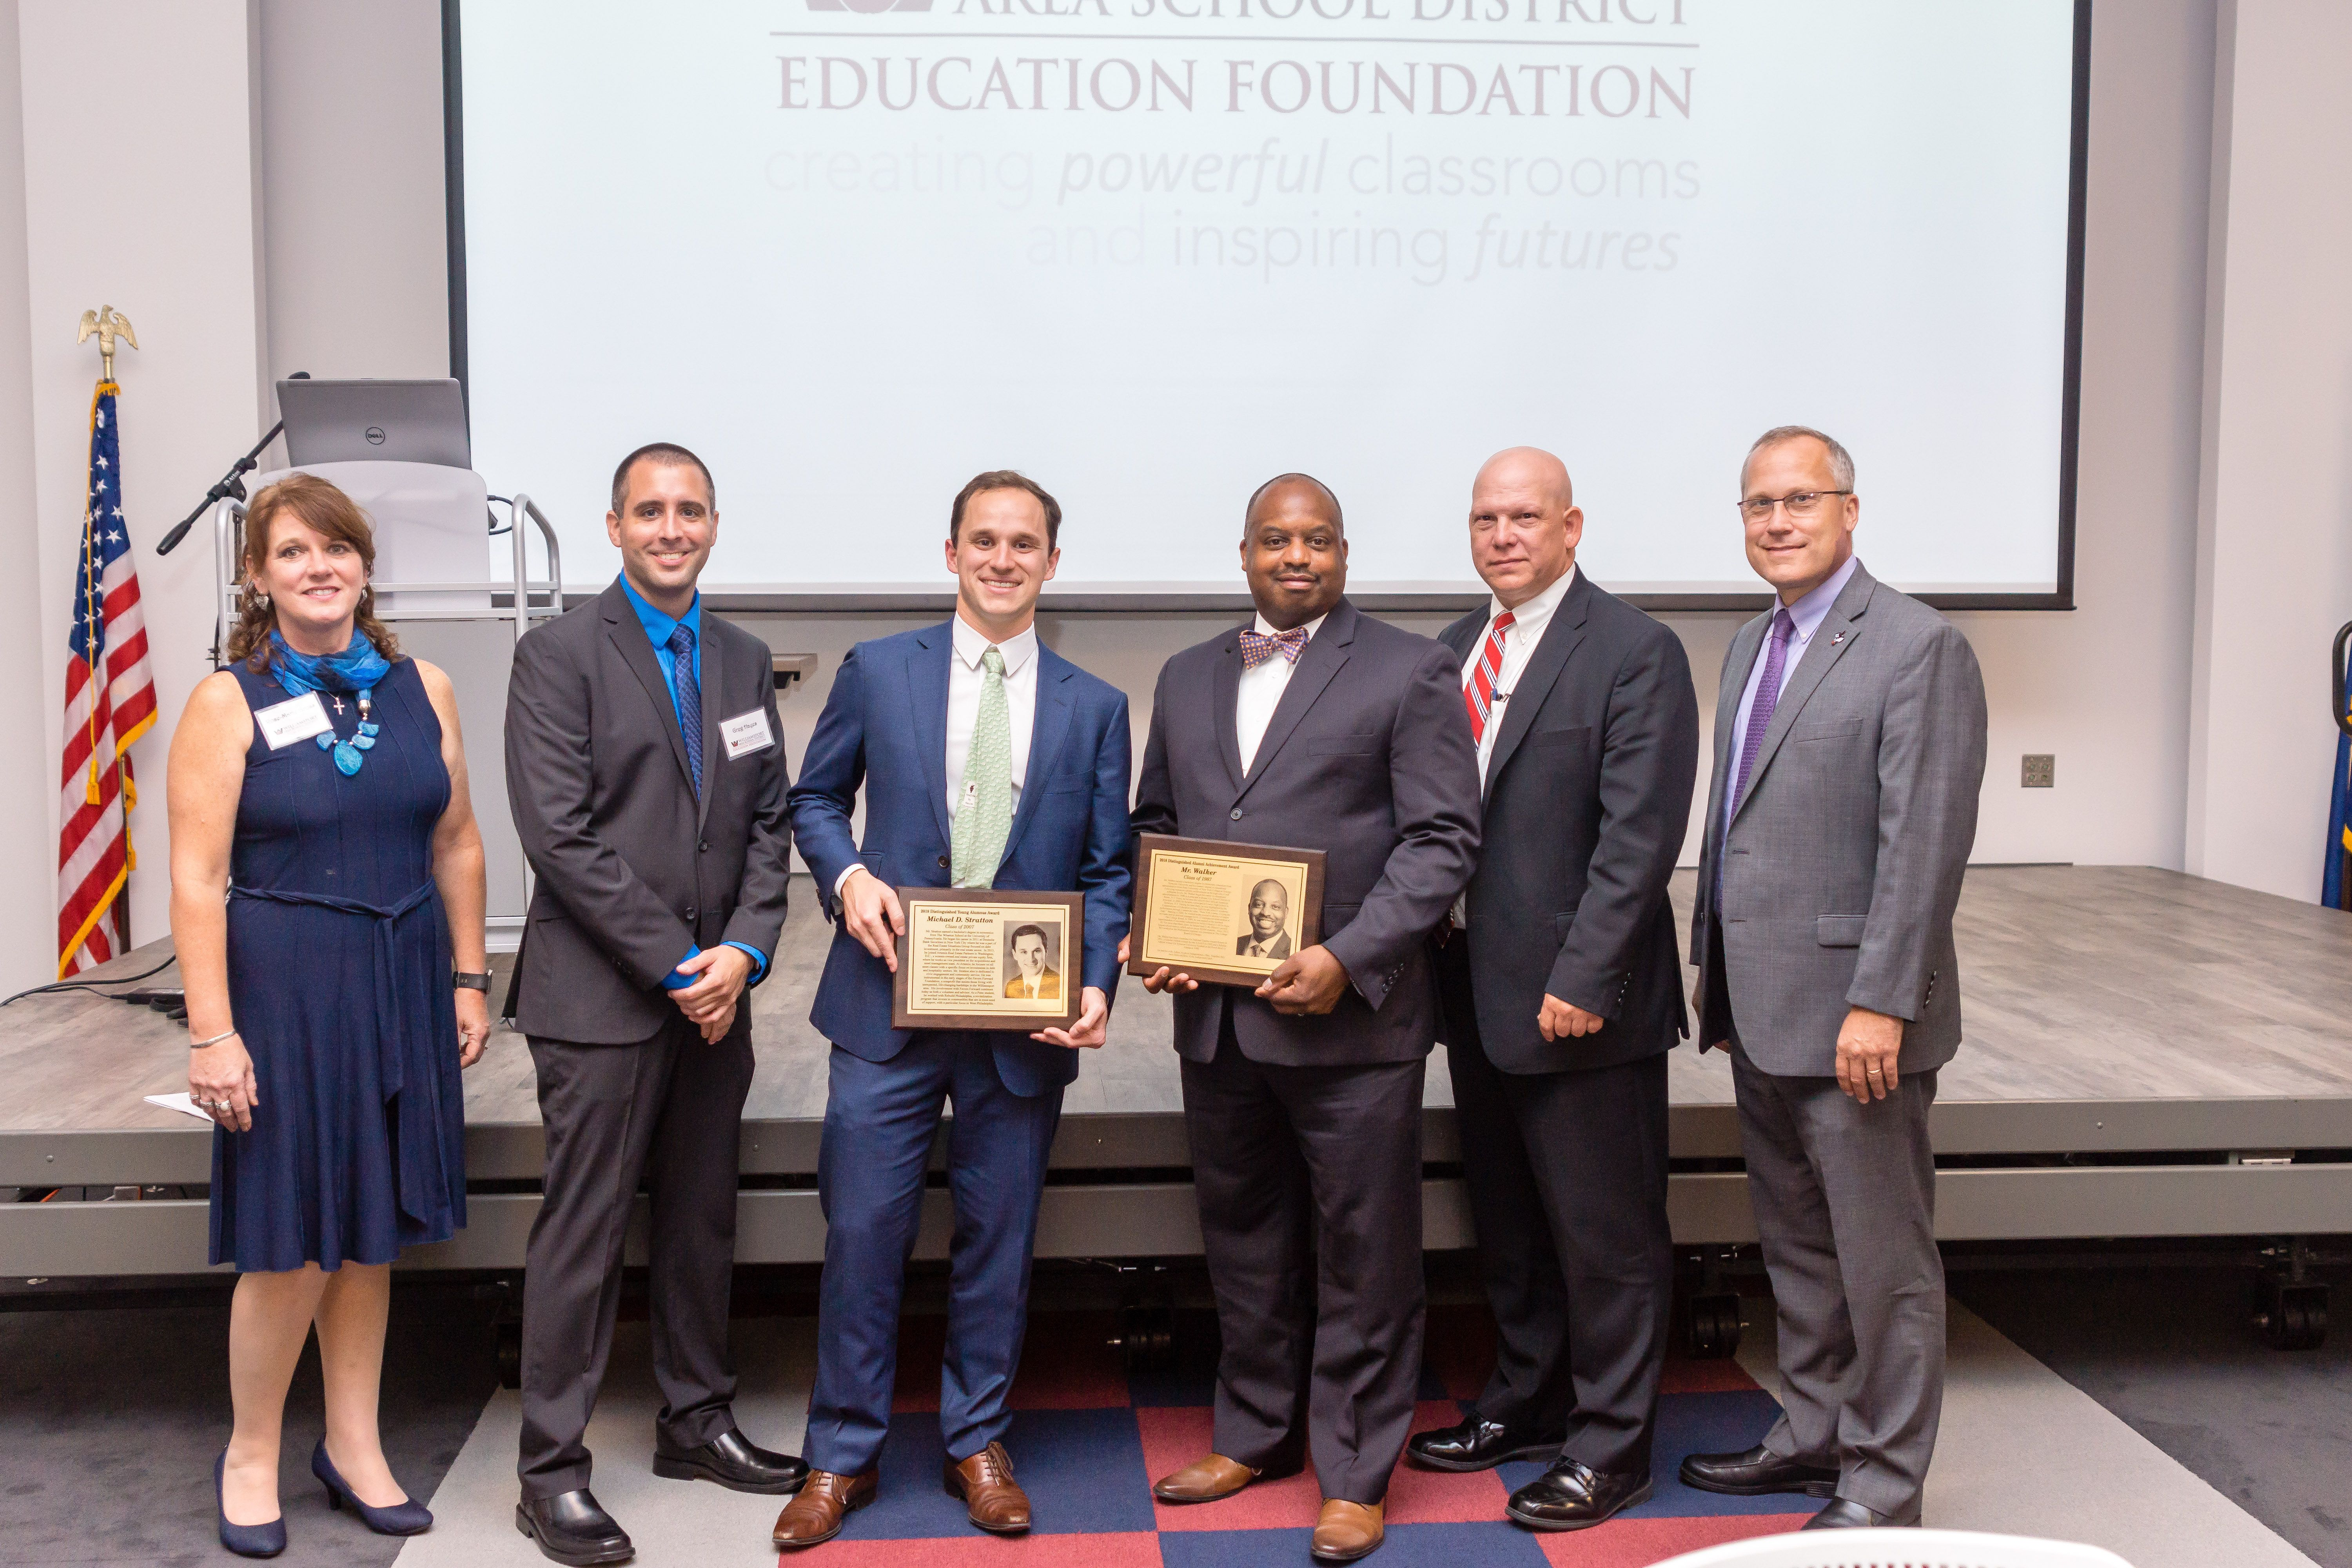 Alumni, Donors Honored at Inaugural Recognition Event